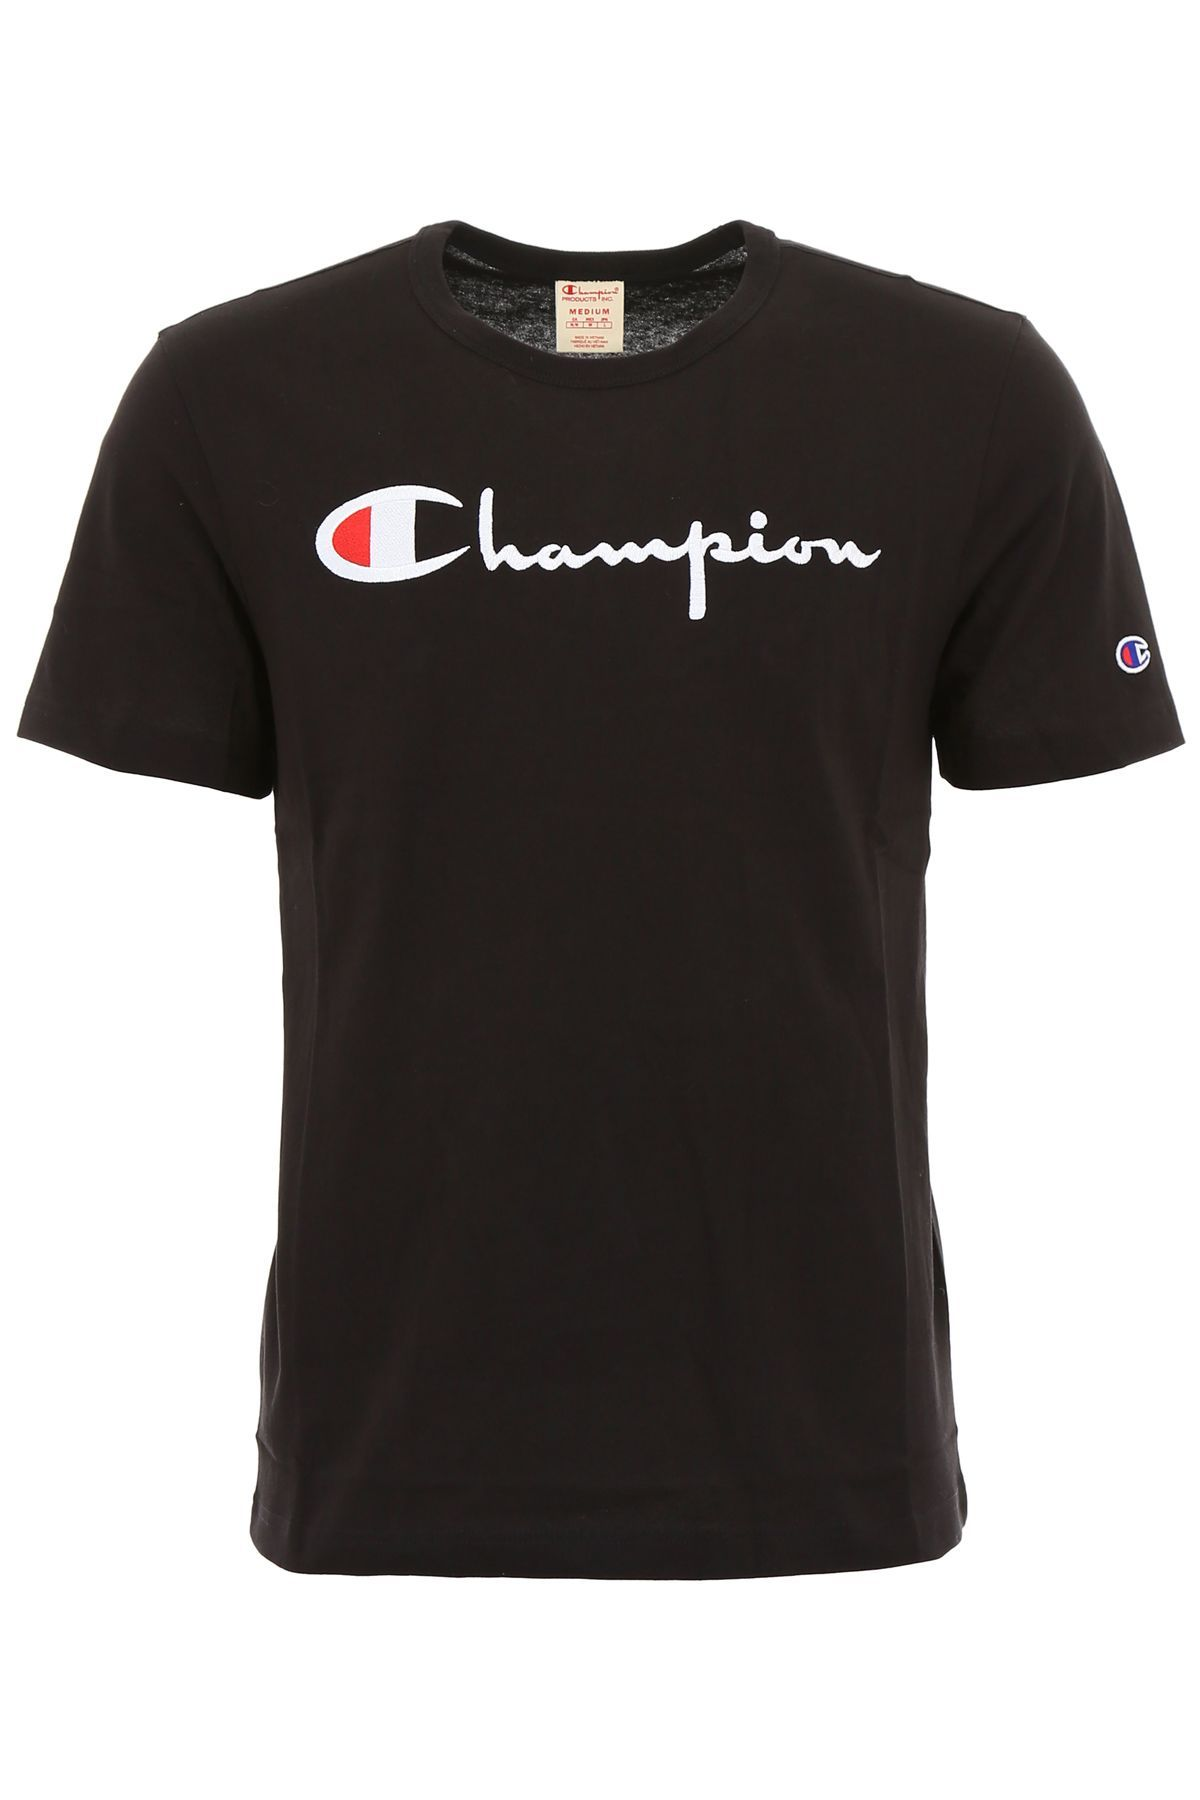 bce2c91e0 CHAMPION CREW NECK T-SHIRT.  champion  cloth